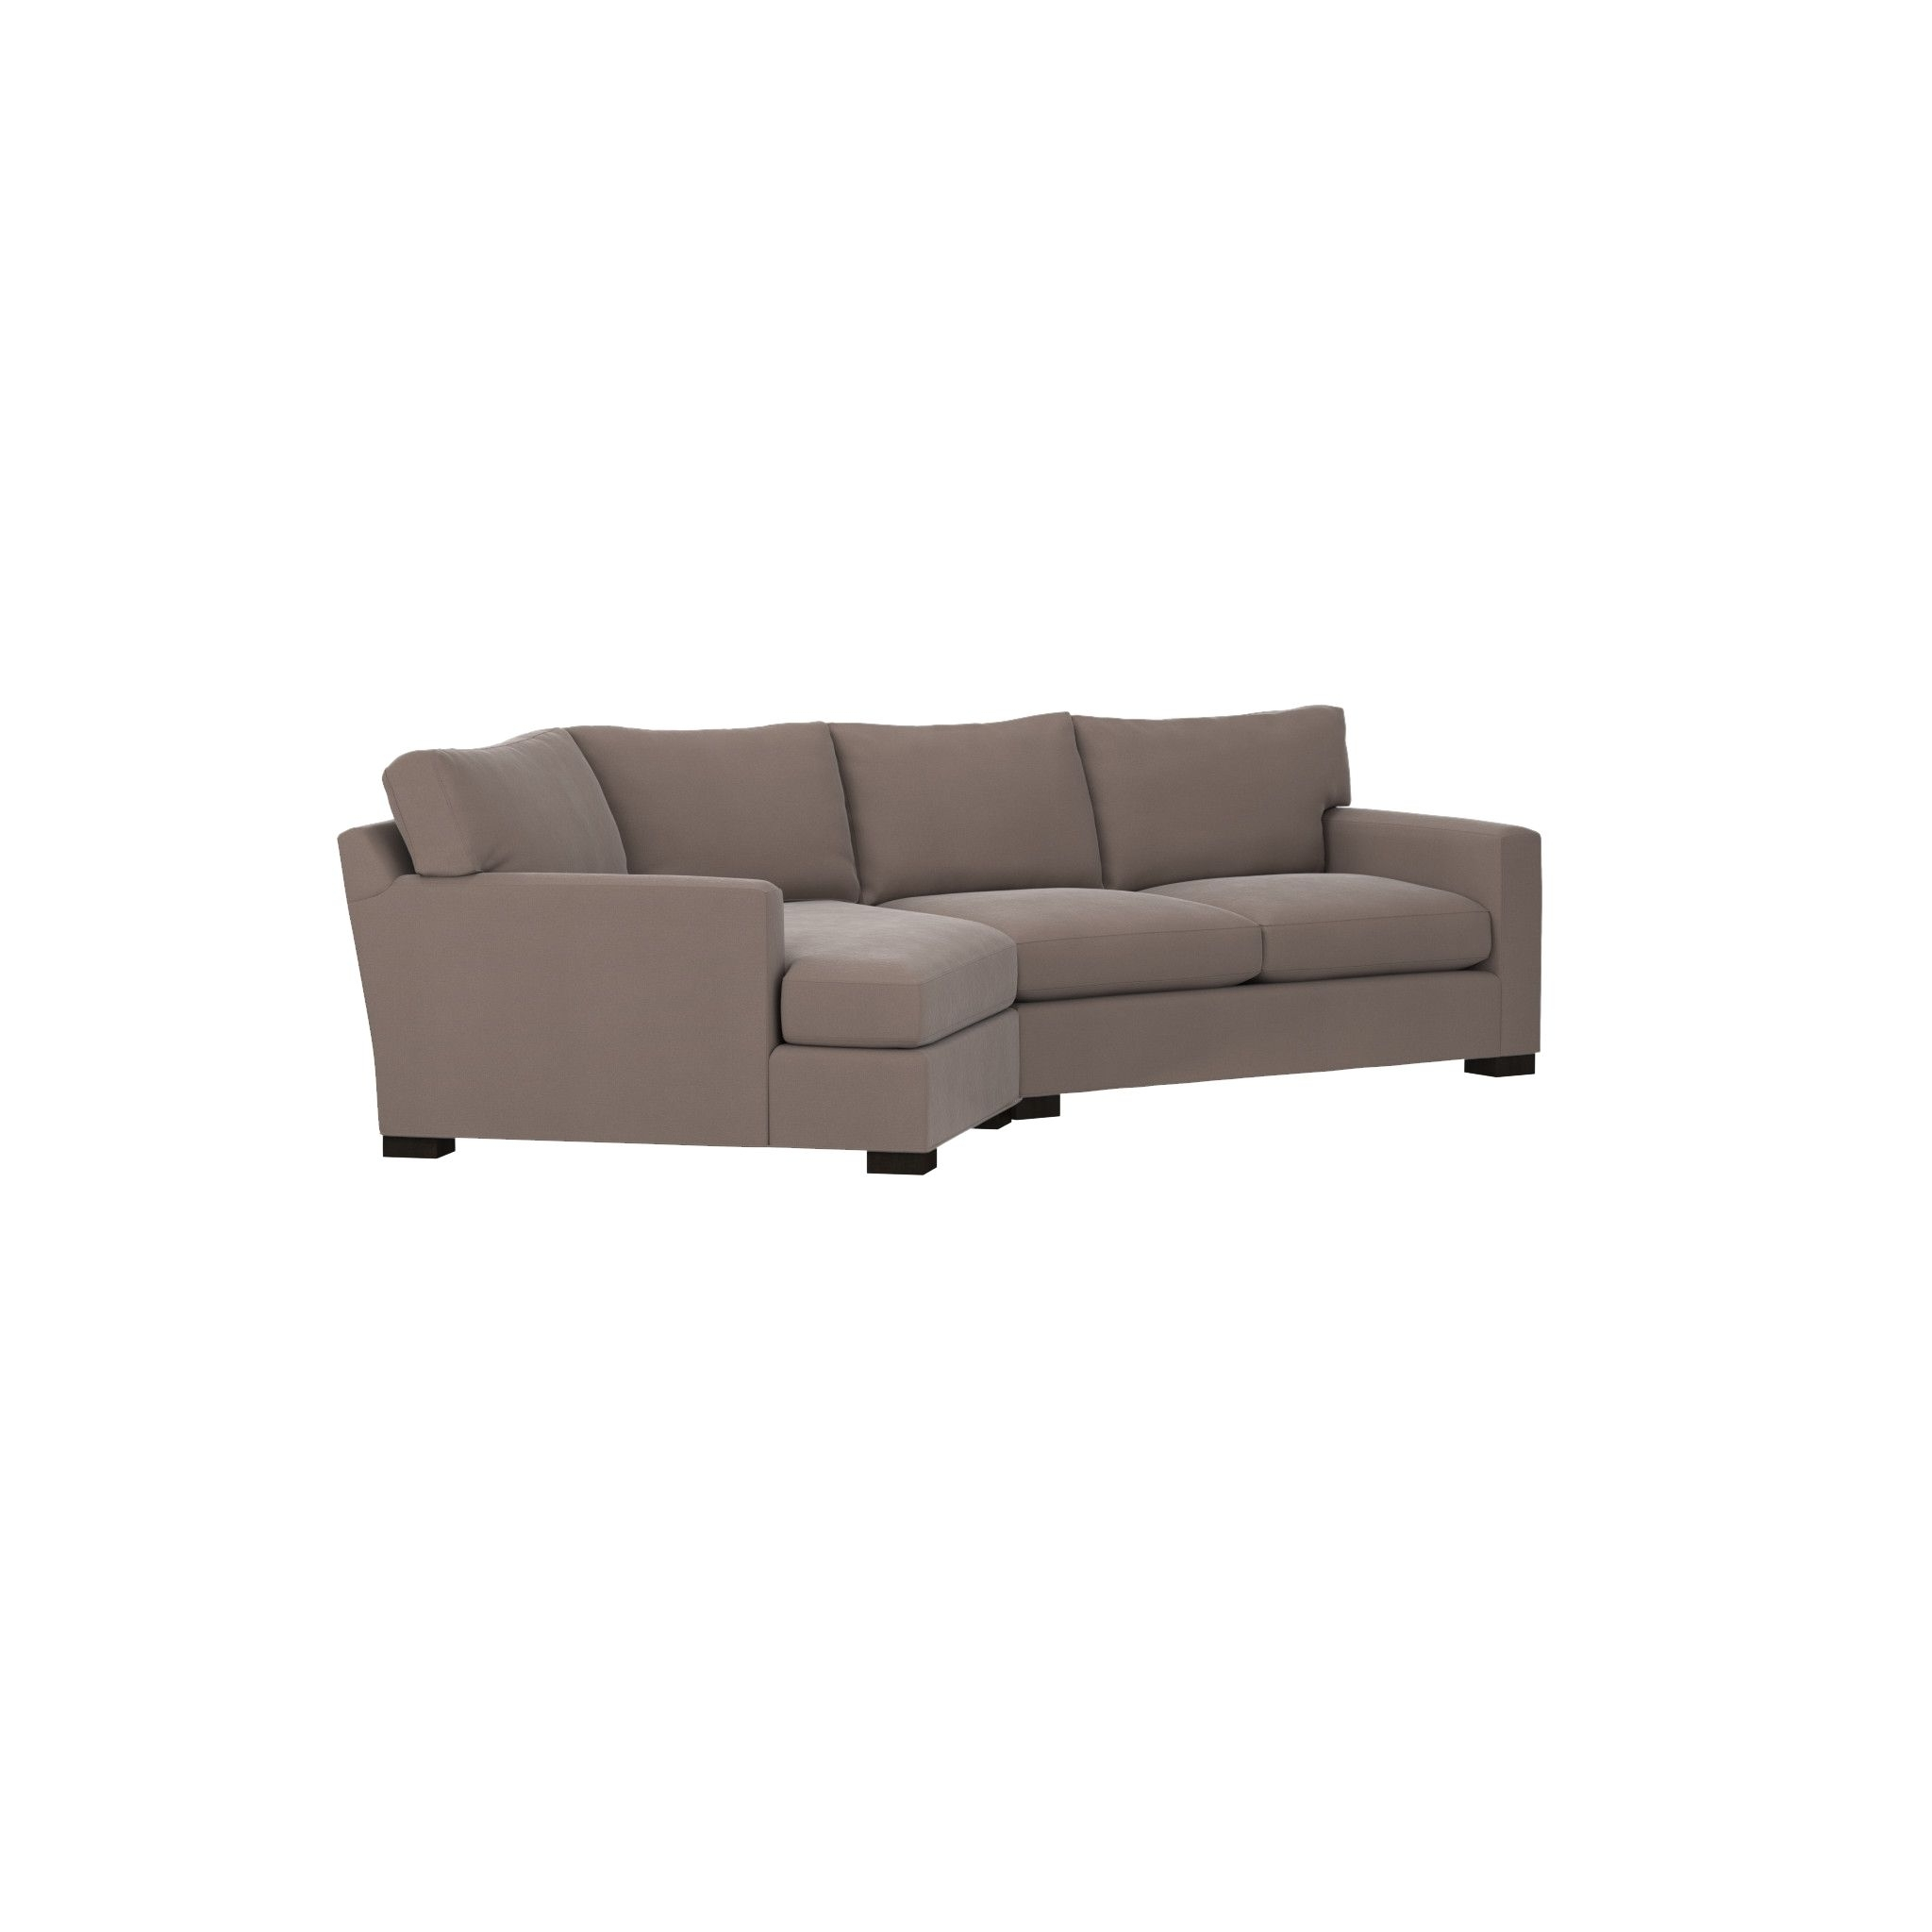 Most Up To Date Angled Chaise Sofas Regarding Axis Ii 2 Piece Right Arm Angled Chaise Sectional Sofa Crate And (View 16 of 20)